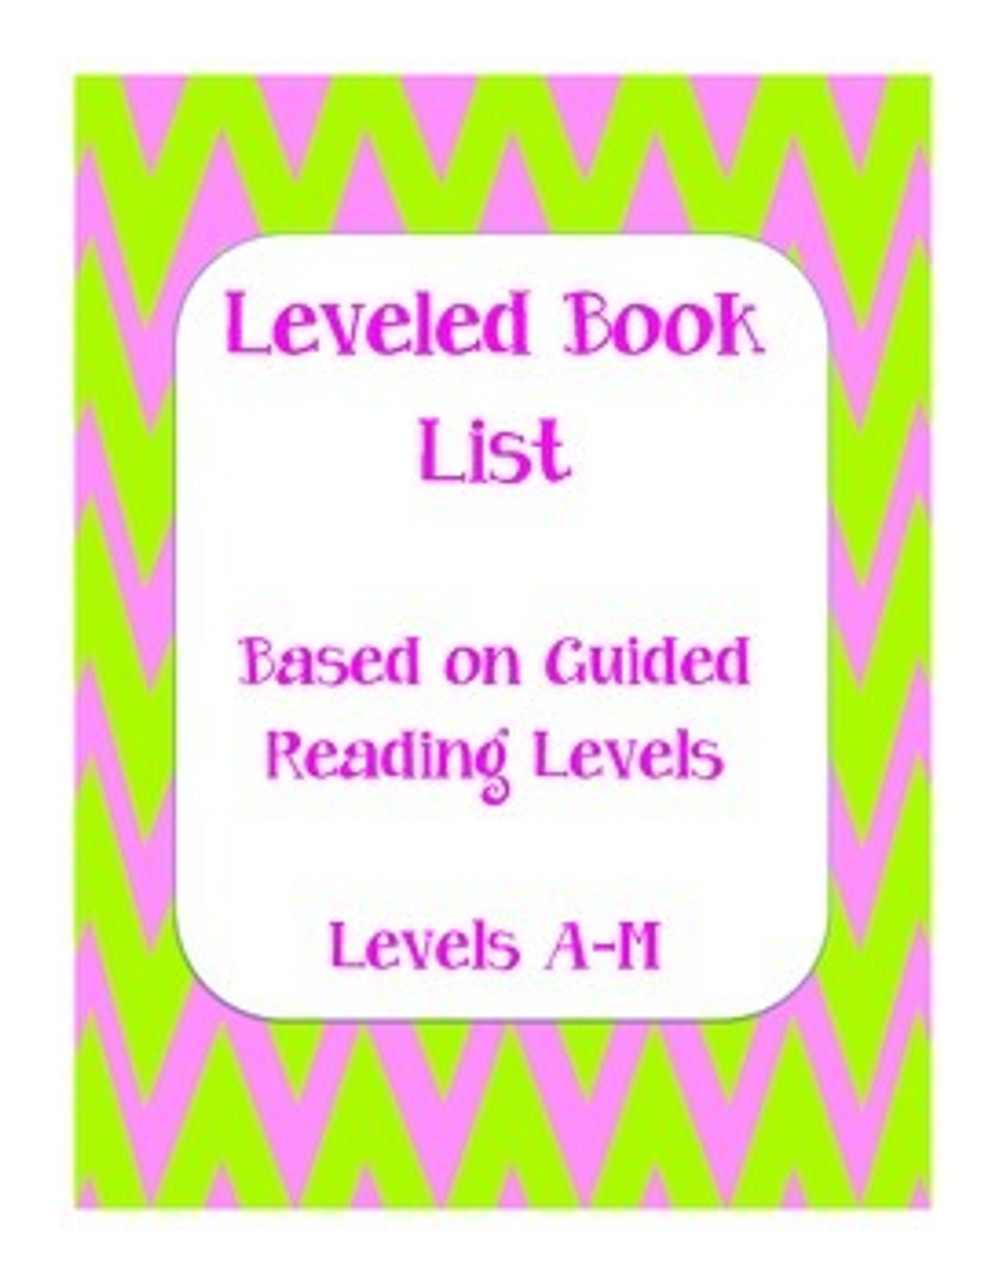 Guided Reading Leveled Book List (level A-M)